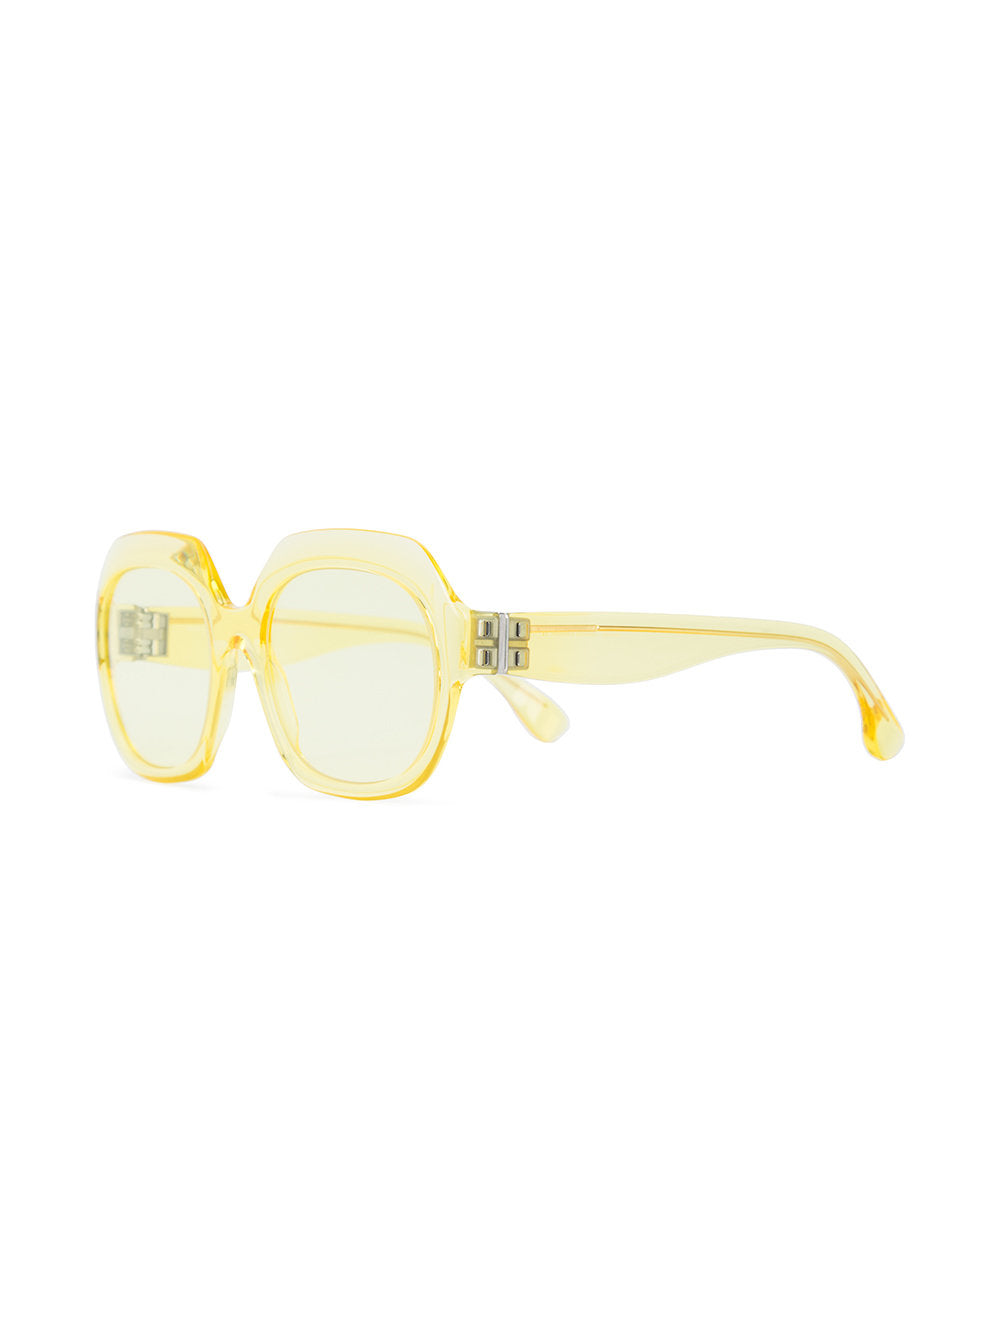 Mykita x Margiela Yellow Frame Glasses - 2